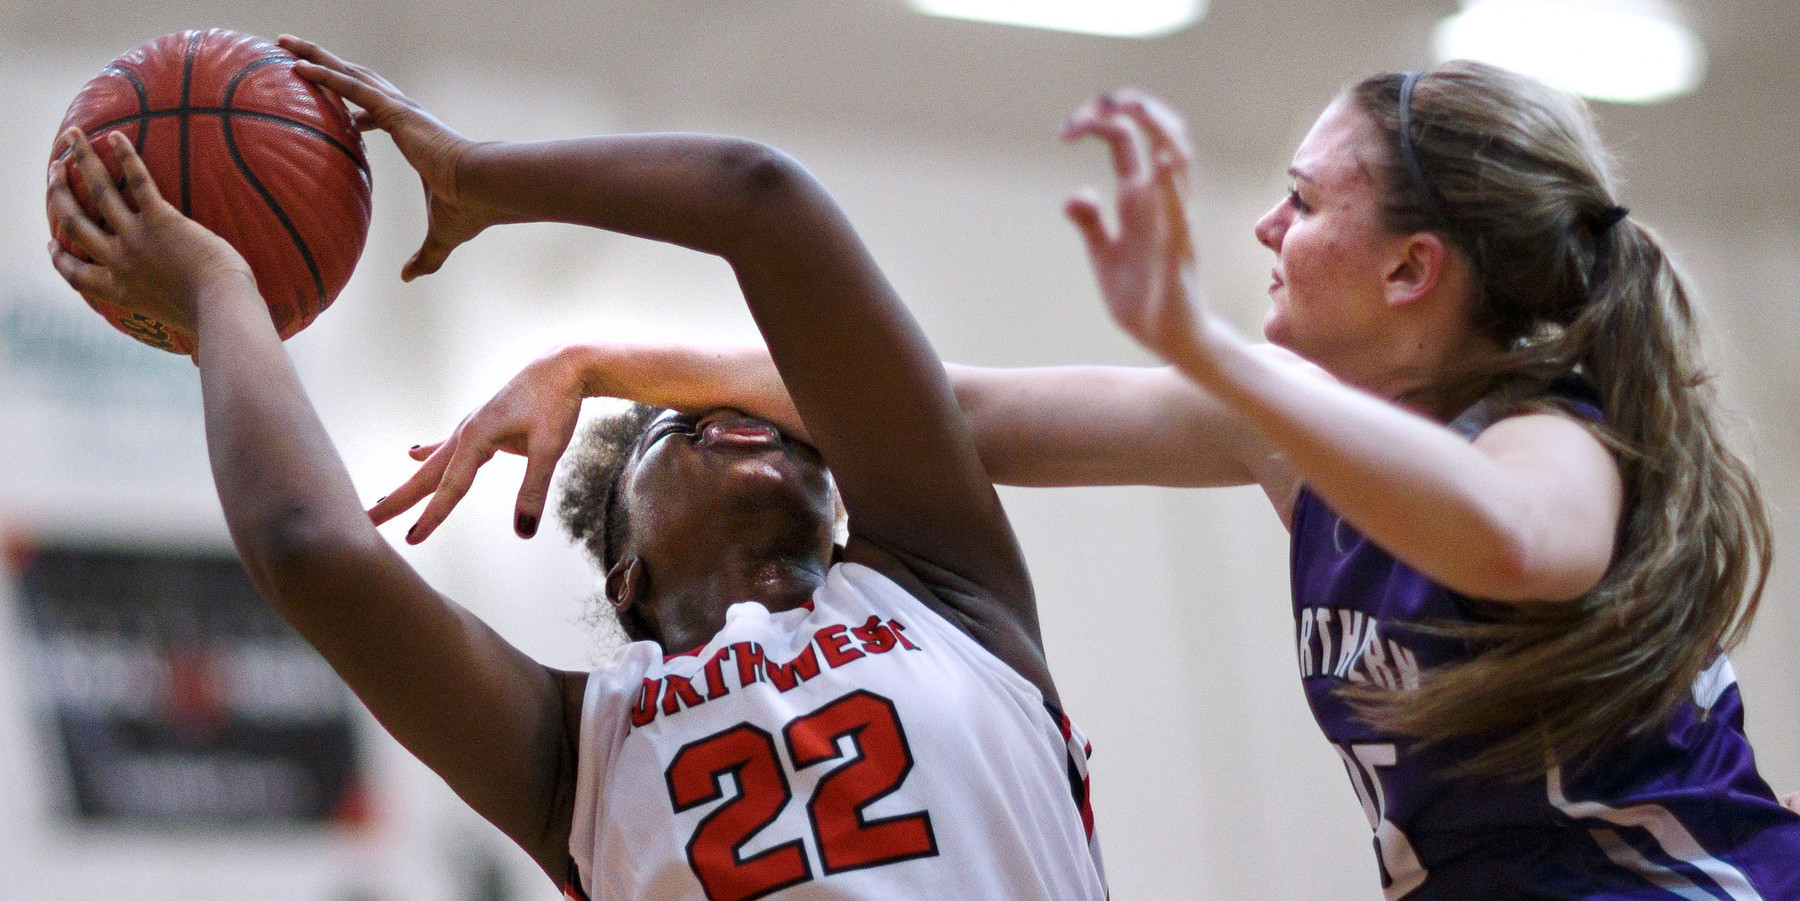 Honorable Mention I SportsJerry Wolford, News & RecordNorthern Guilford's Kasey Johnson hits Northwest Guilford's Bria Gibbs in the nose while trying to block a shot and is called for the foul. Non-conference girls basketball, Northern Guilford at Northwest Guilford on Tuesday, November 25, 2014.